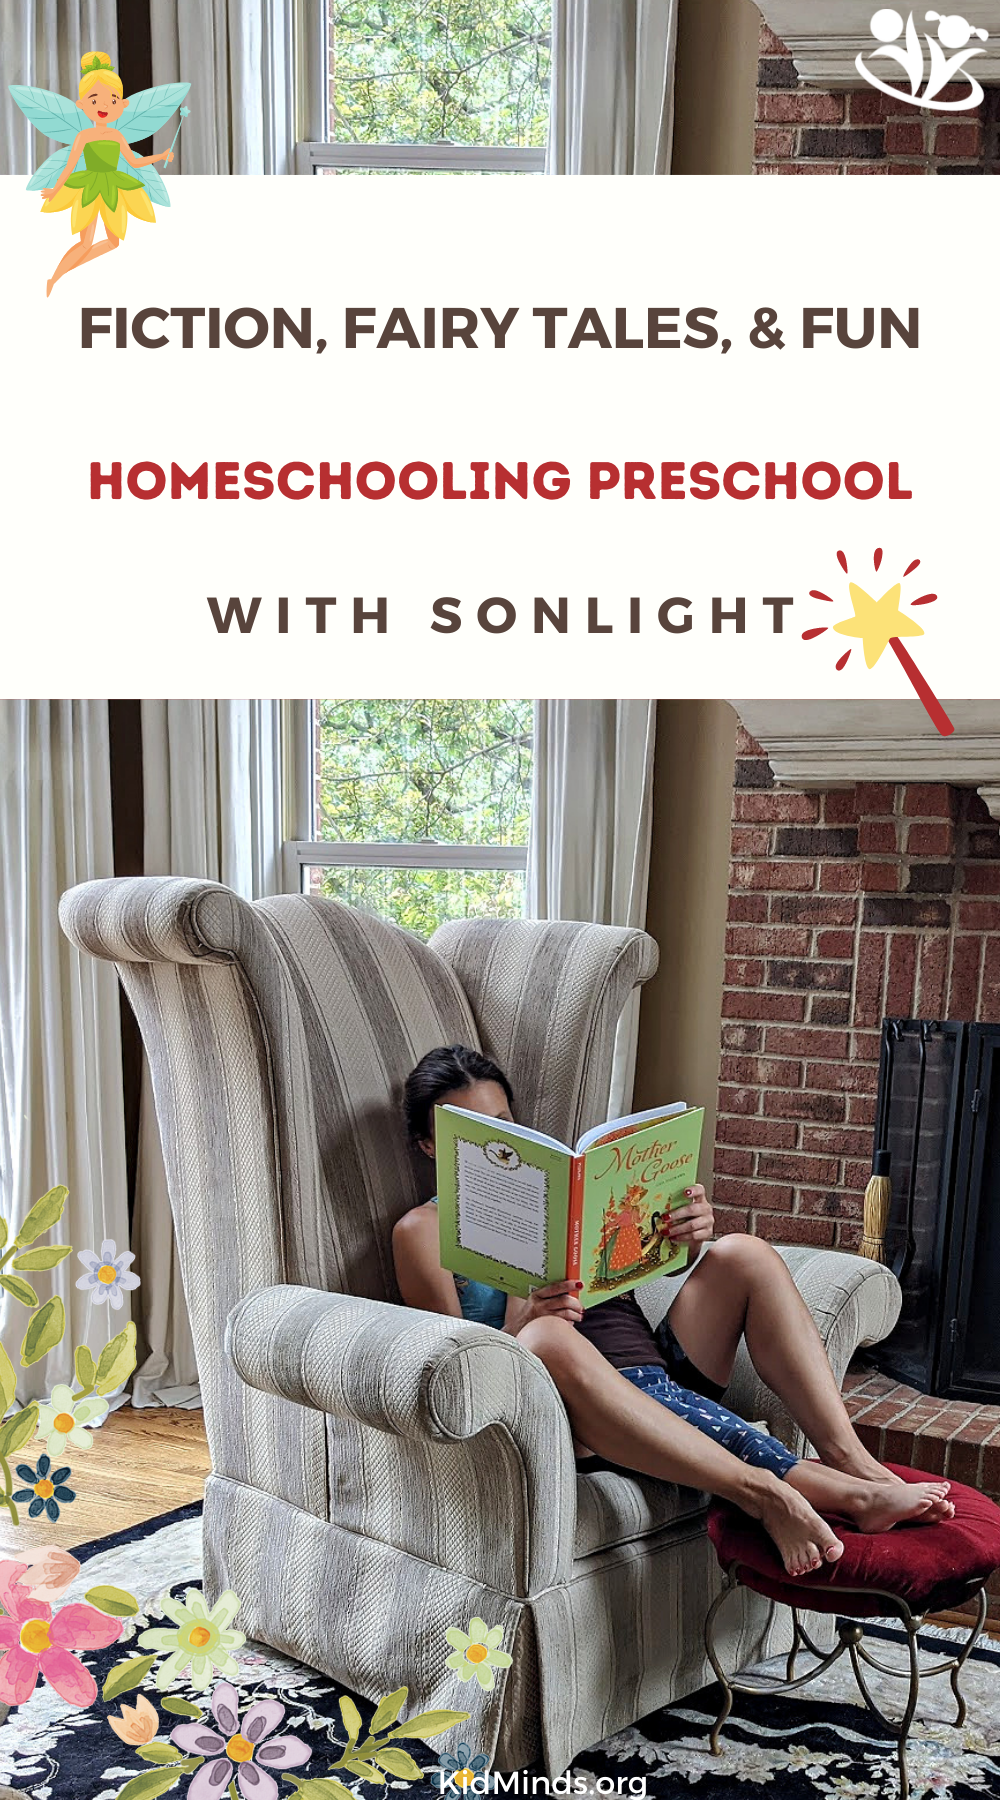 Preschool education at home doesn't have to be complicated. With the Sonlight you get a complete package and instructions. #preschool #curriculum #sonlight #homeschooling #fairytales